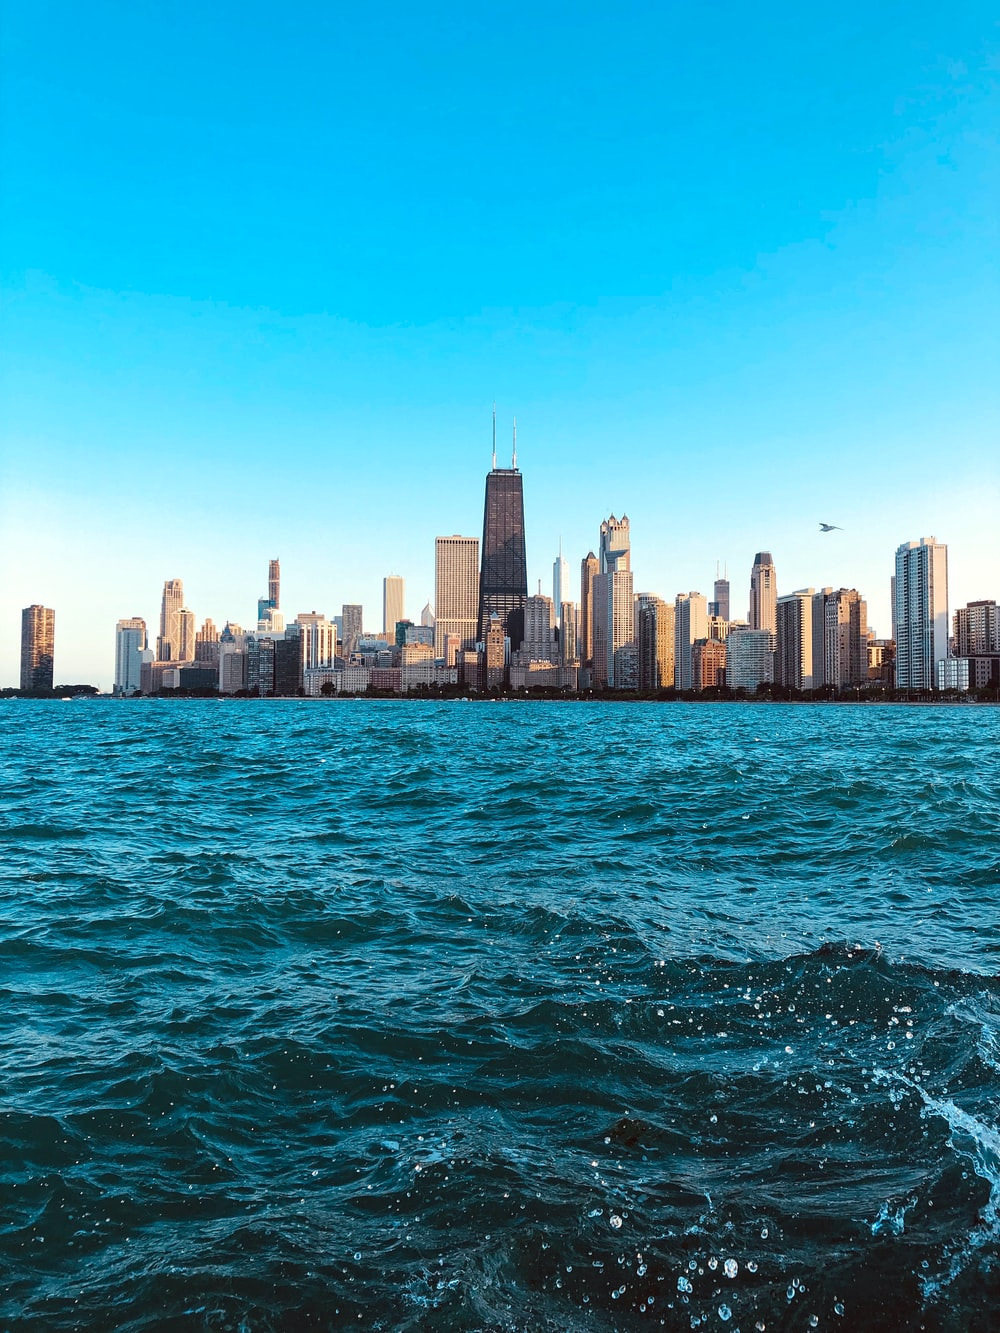 How to Pick Your Chicago iPhone Wallpaper – Wallpaper For Your iPhone